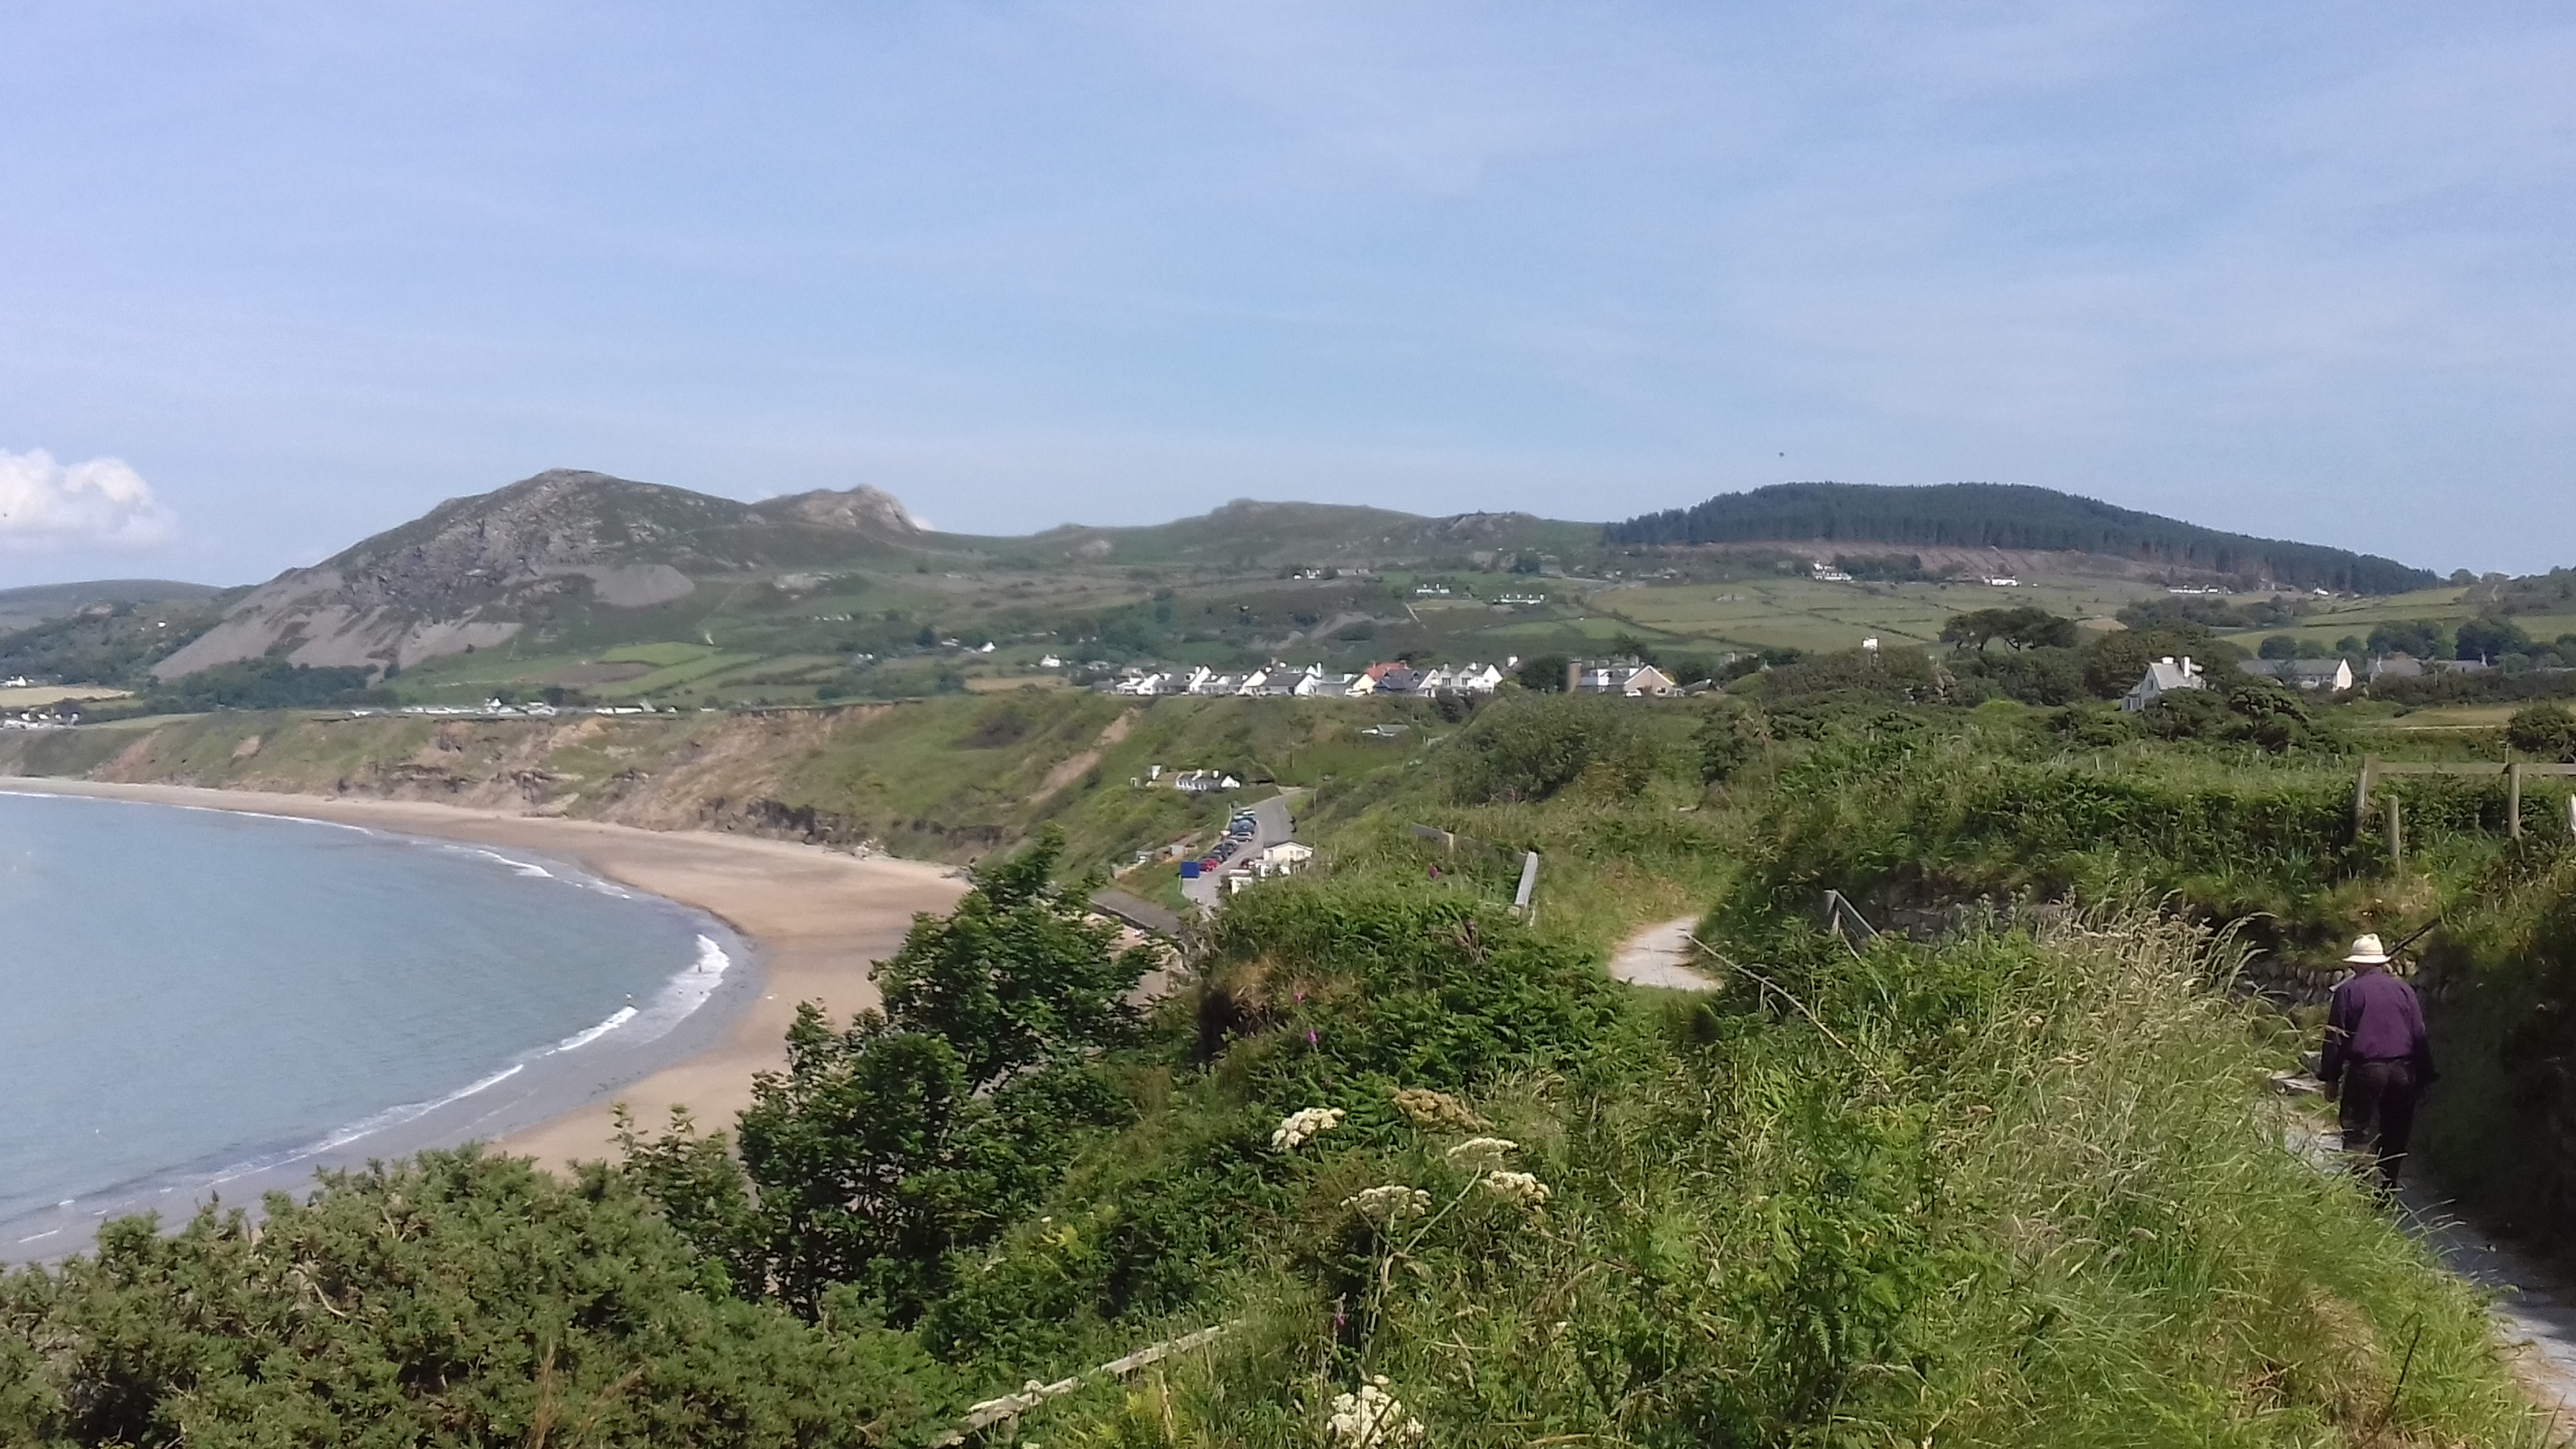 View of Nefyn beach from the Wales Coast Path Llŷn Peninsula